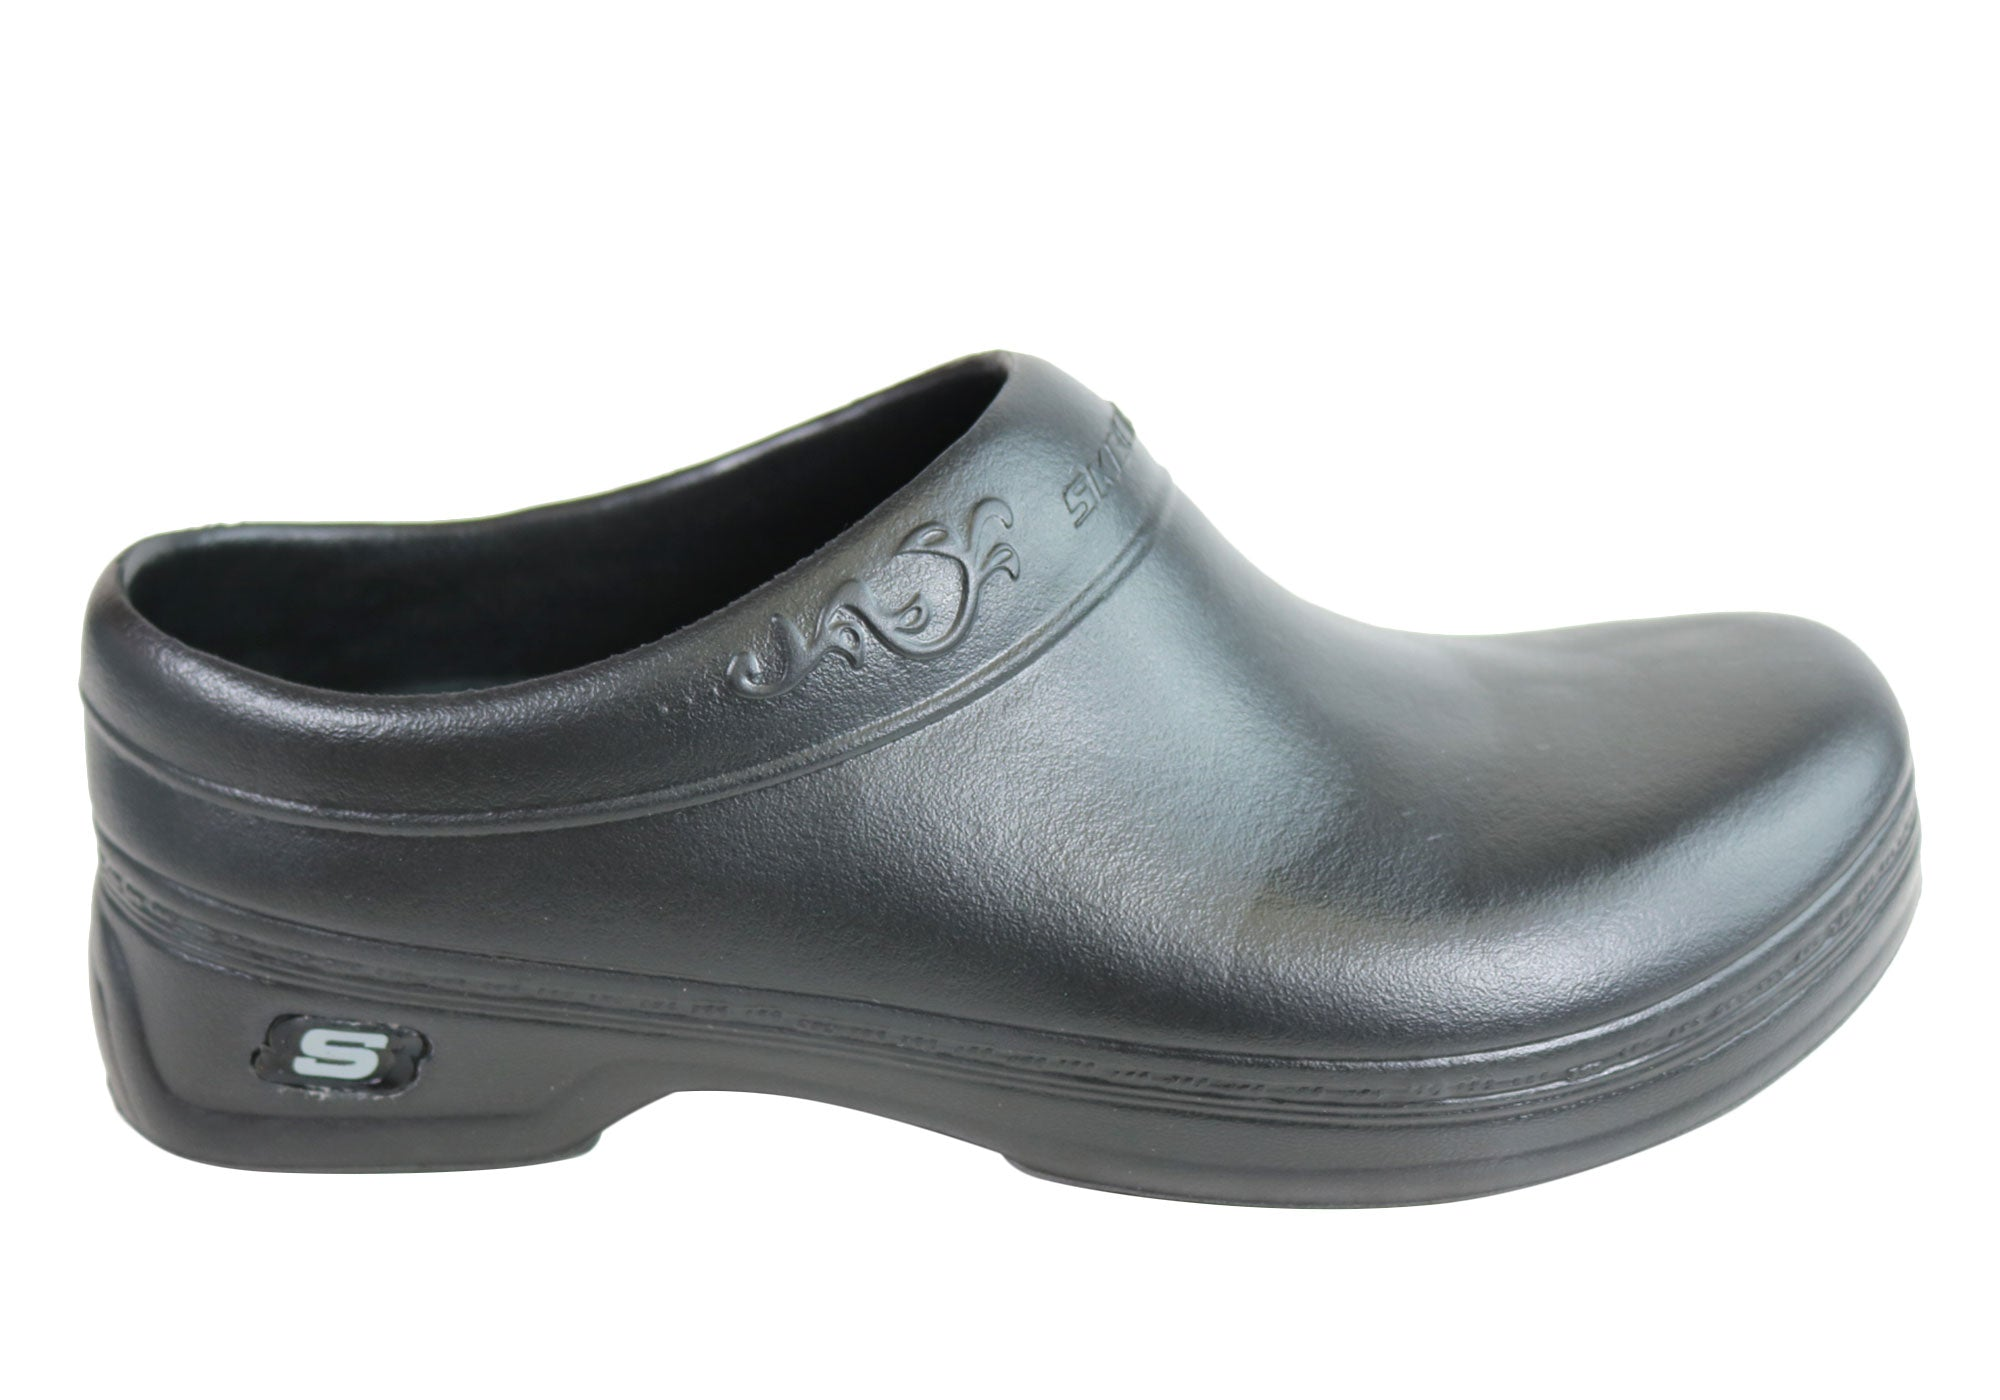 2e1250af7b92 Details about New Skechers Work Oswald Clara Comfortable Slip On Clog Shoes  Womens